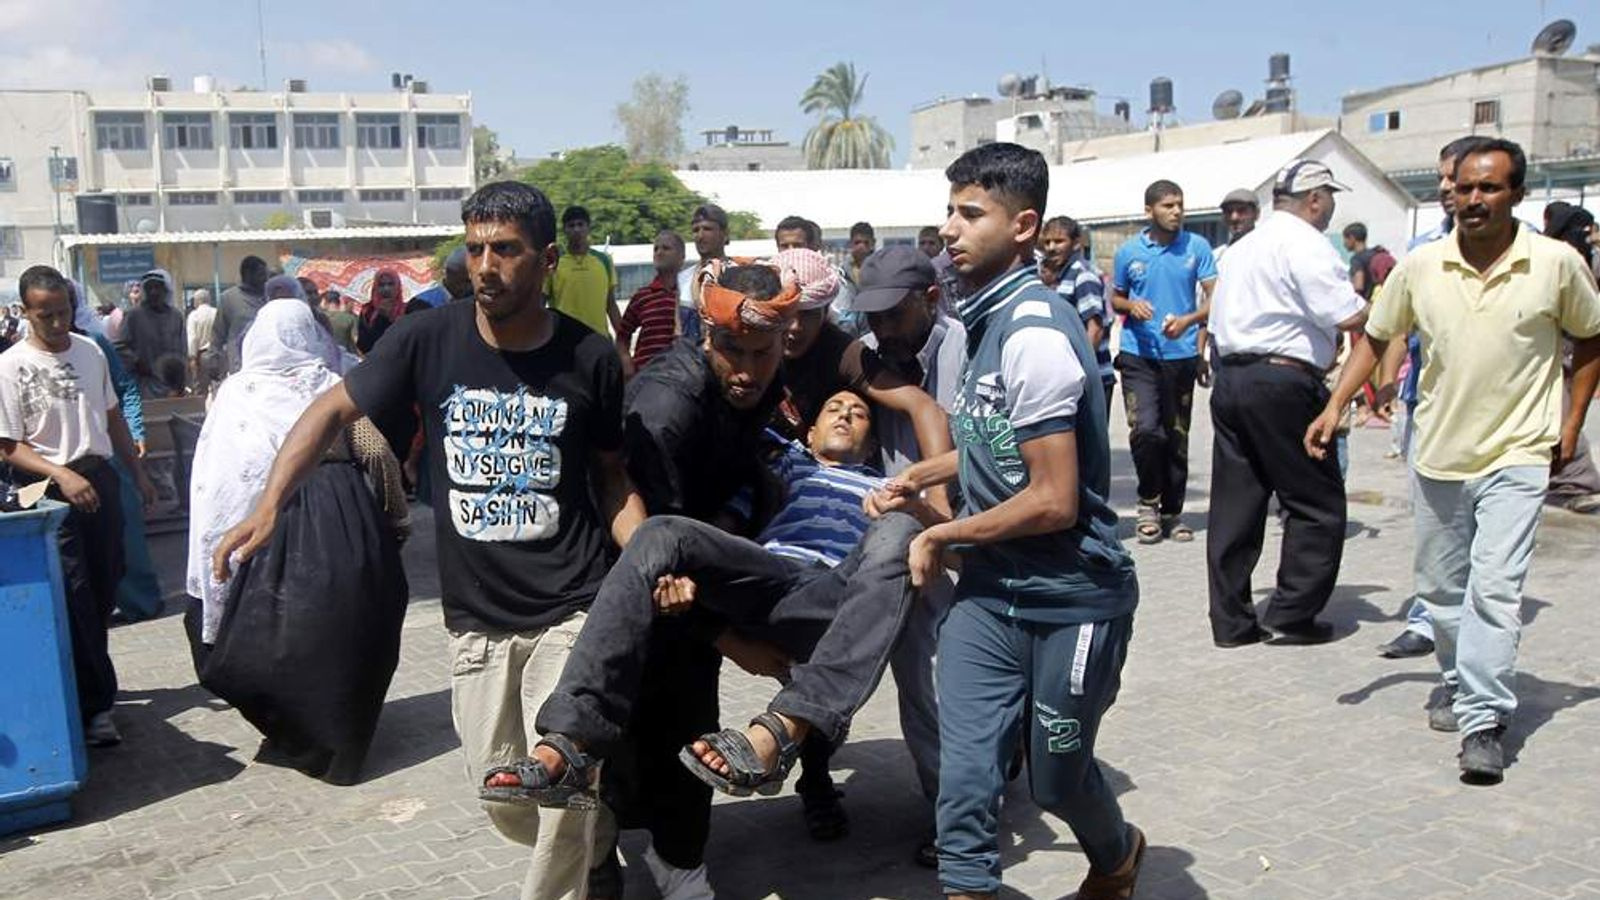 Palestinians carry an injured man following an Israeli military strike on a UN school.